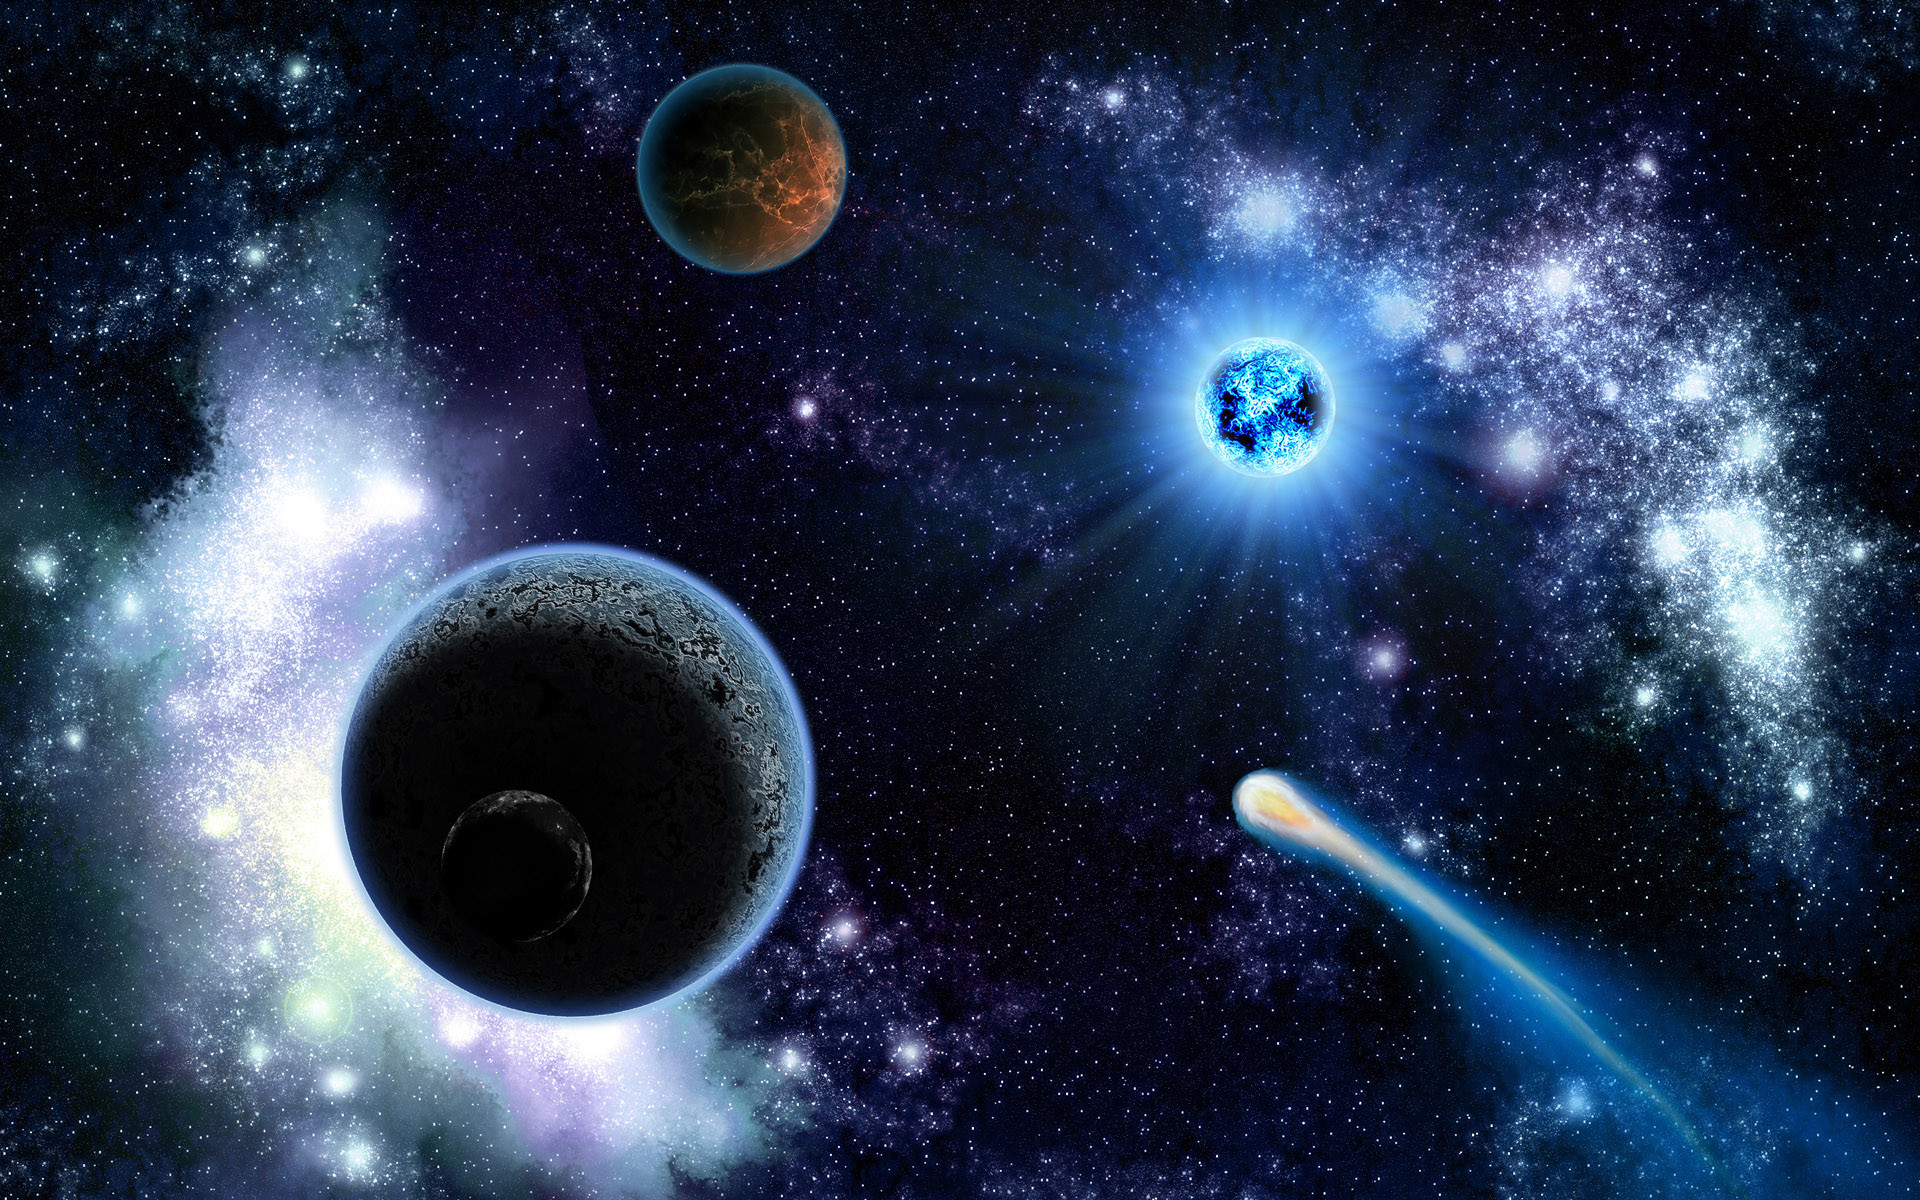 Space Planets And Comets – Wallpaper #9985